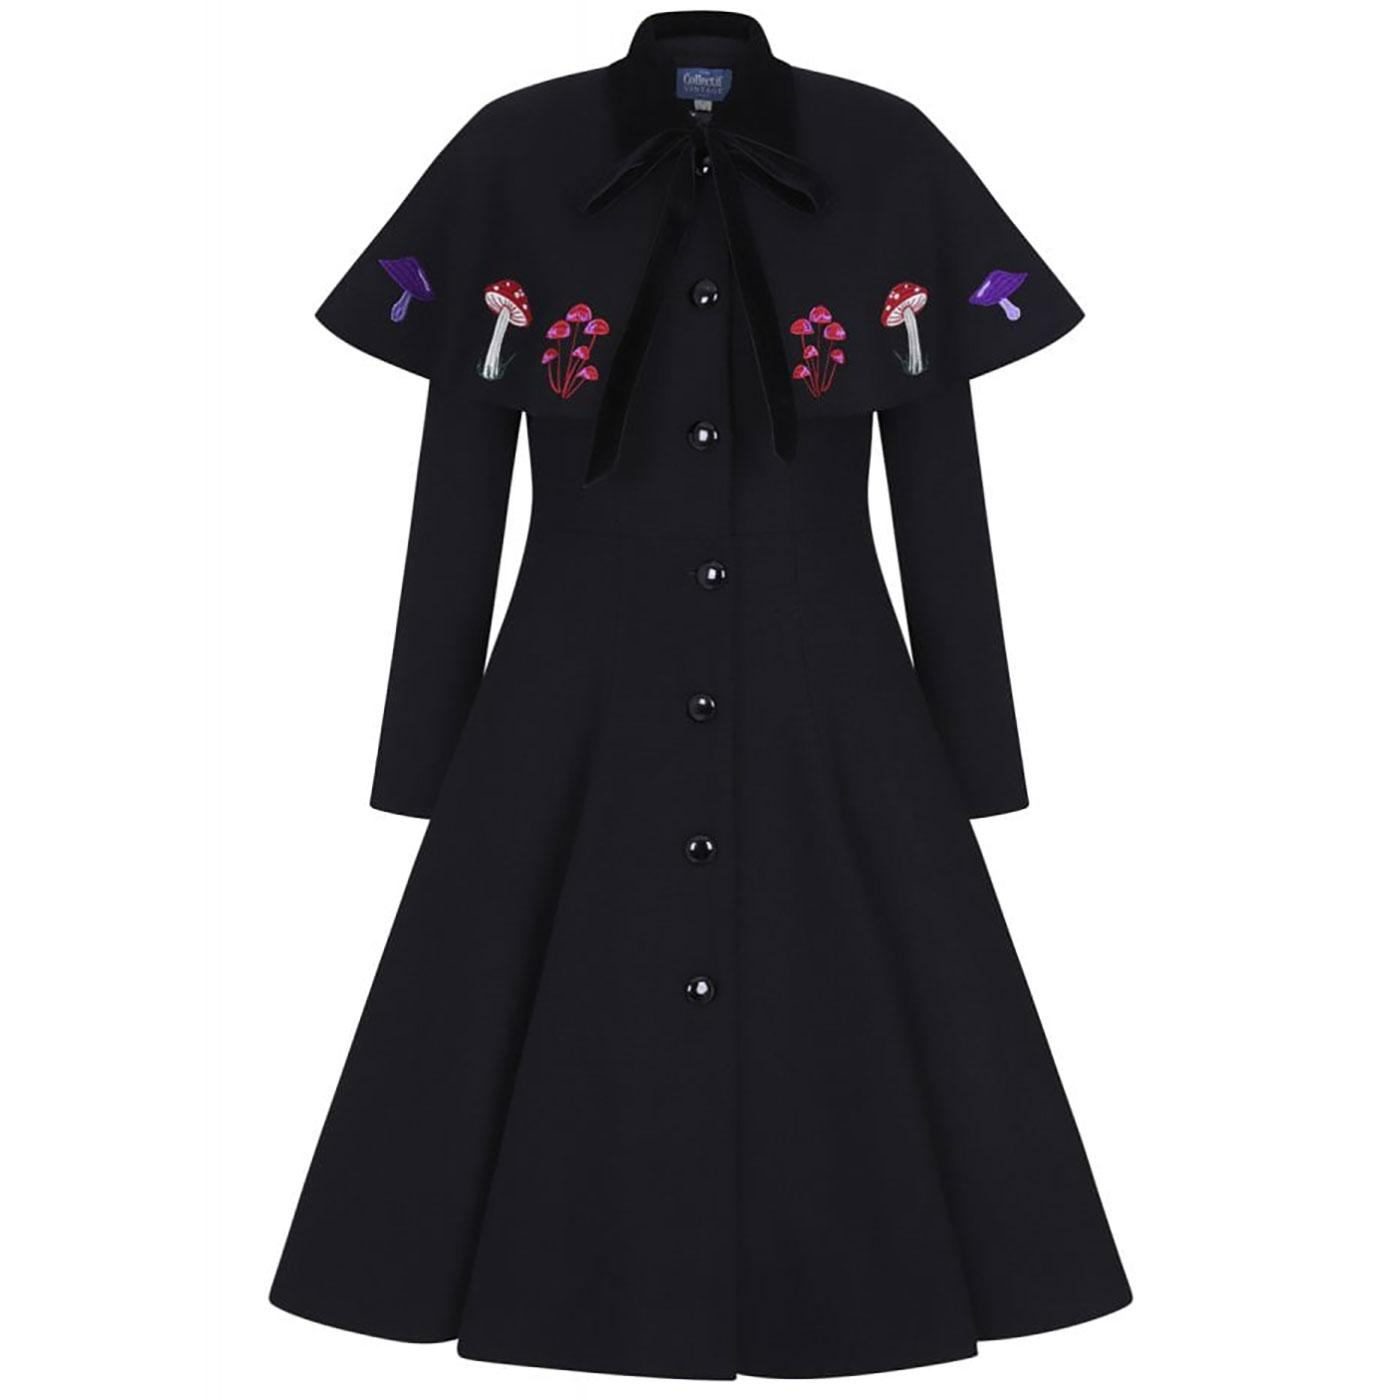 Claudia in Wonderland COLLECTIF Swing Coat & Cape